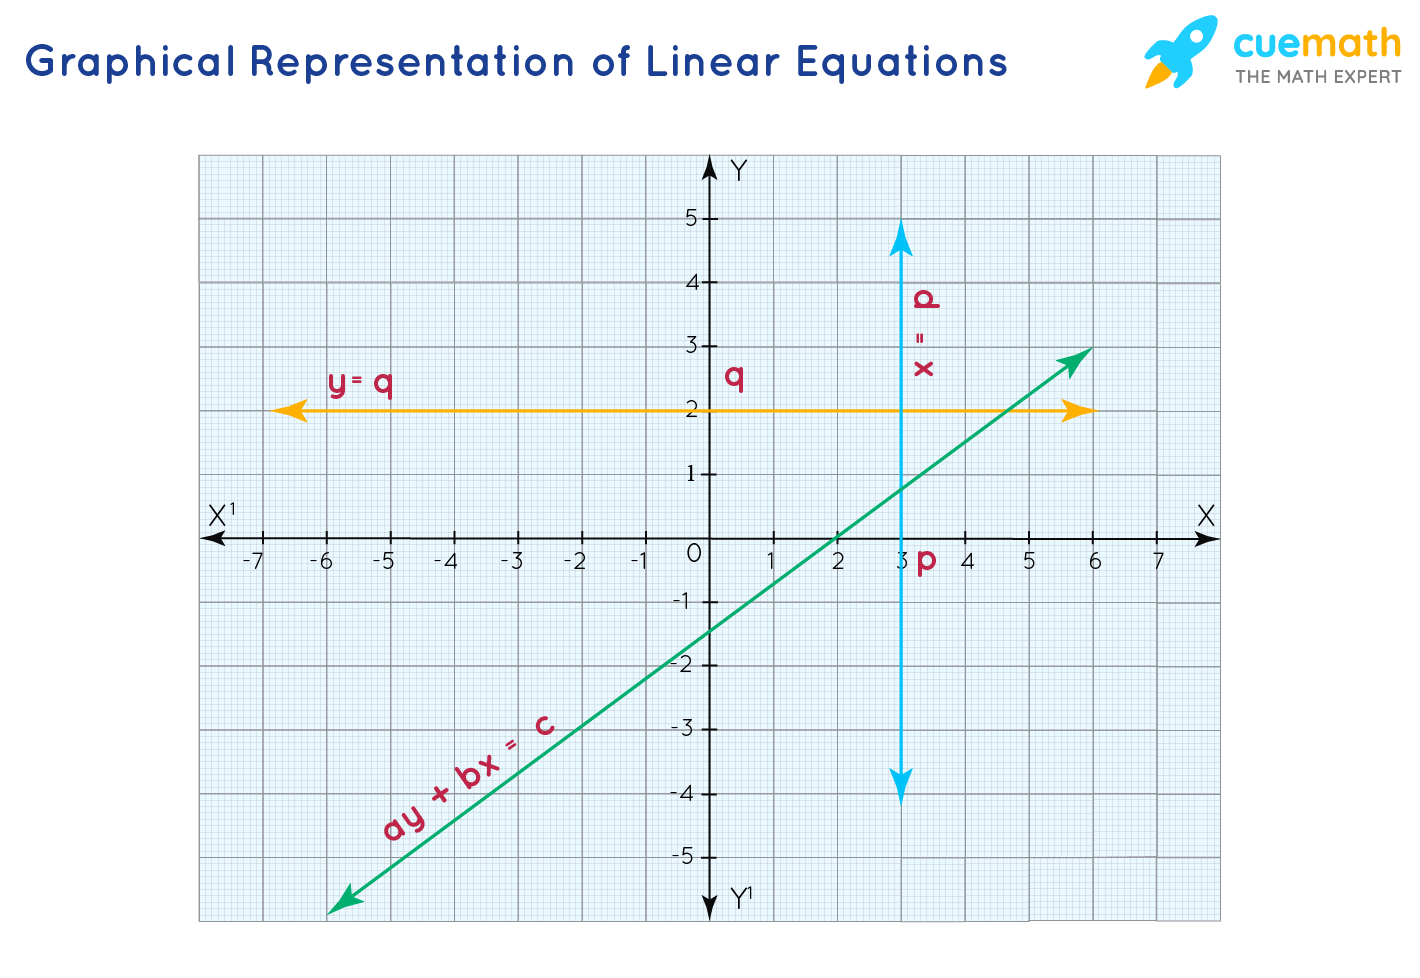 The graphical representation of linear equations with one and two variables.